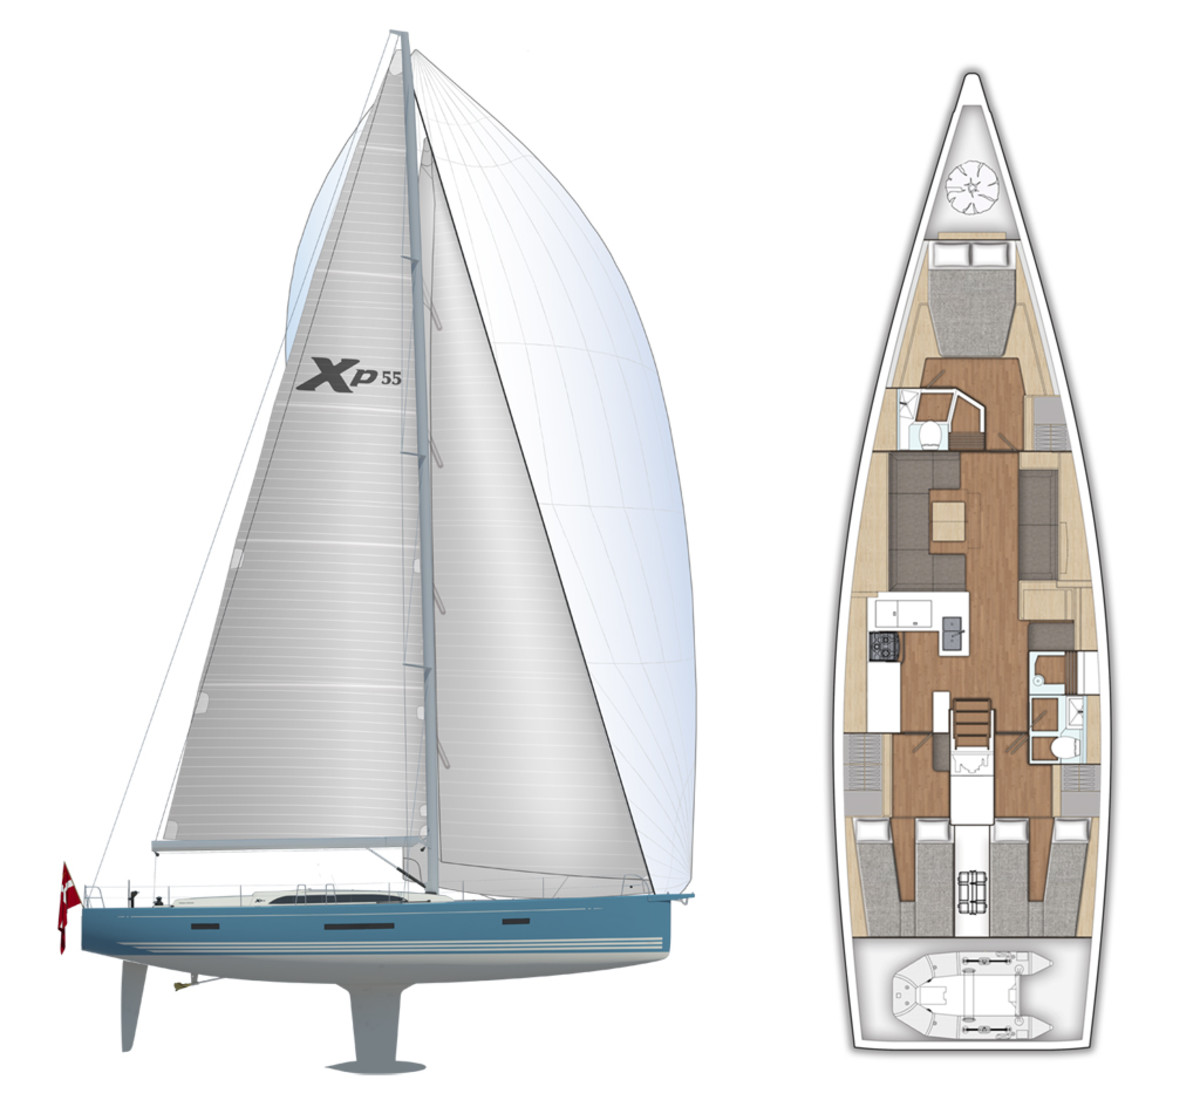 01-Sailplan-Xp-55-blue